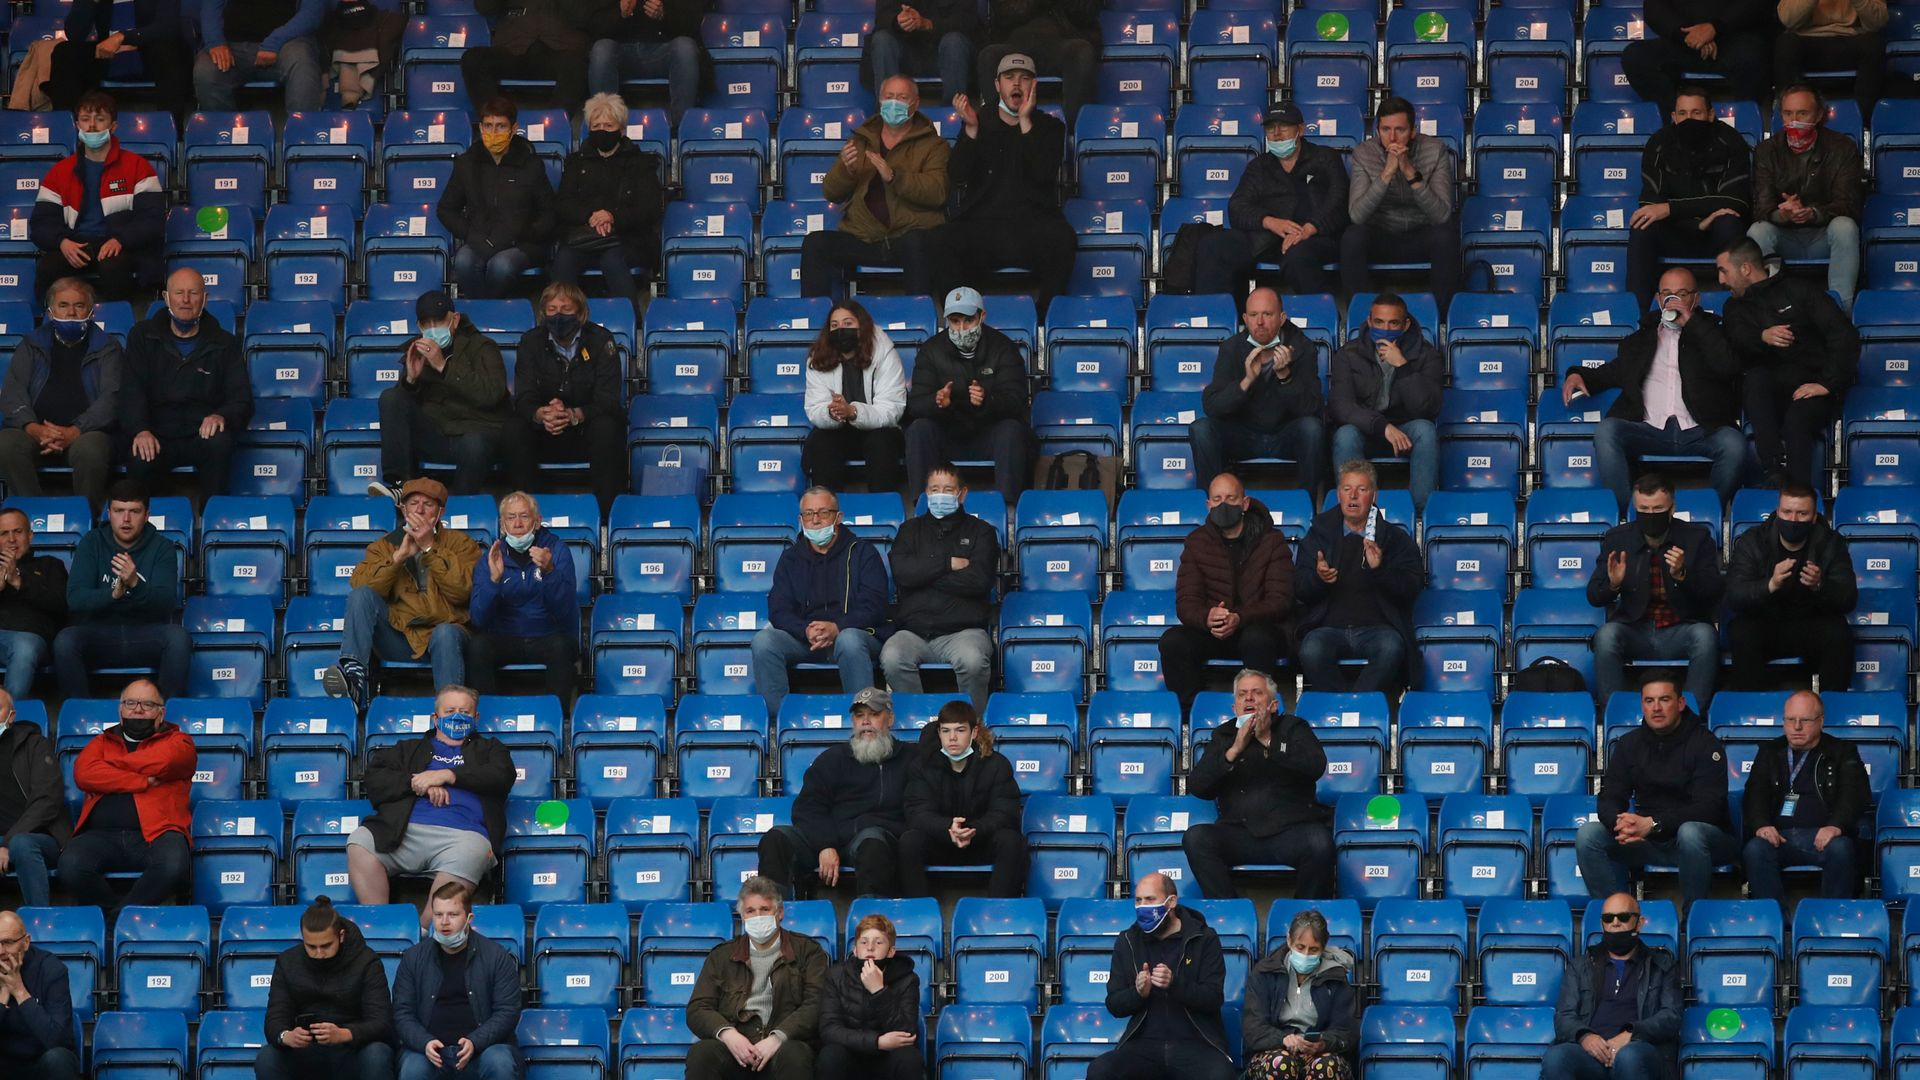 Chelsea ticket holders face missing Palace game